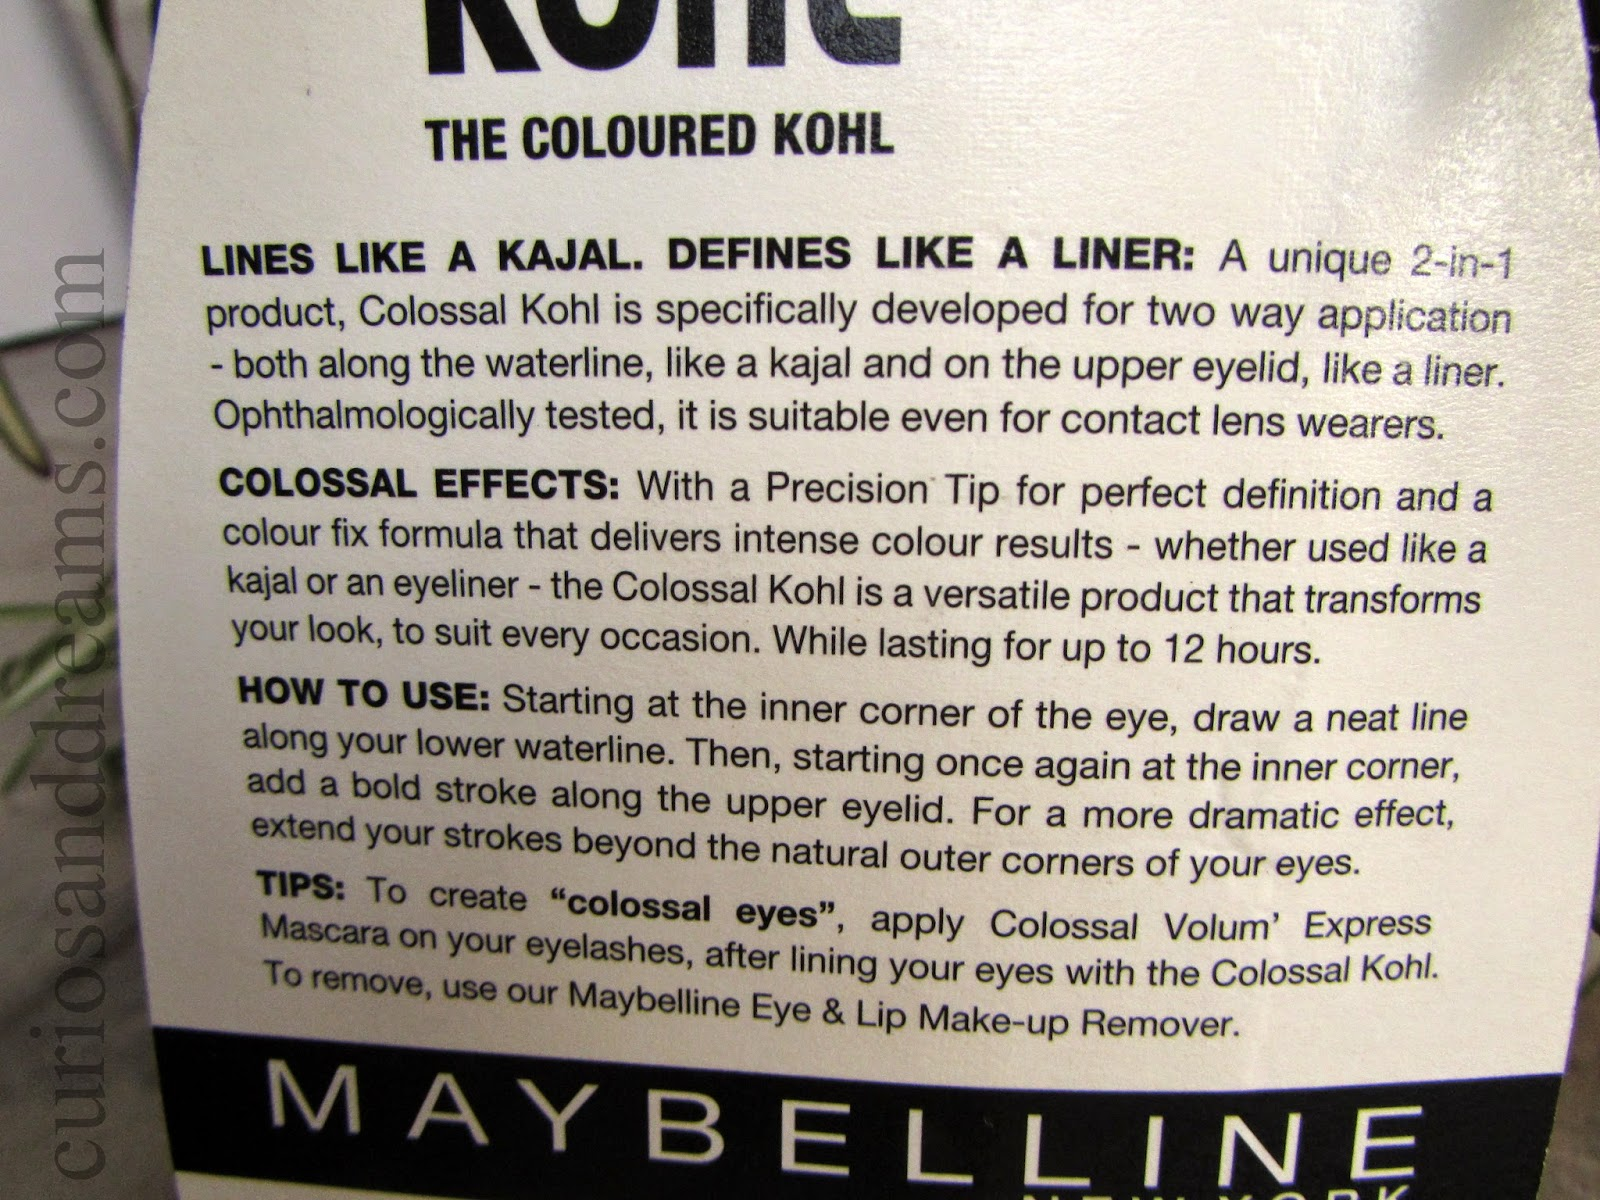 Maybelline the Colossal Kohl Turquoise Review, Maybelline the Colossal Kohl Turquoise Swatches, Maybelline the Colossal Kohl Turquoise EOTD